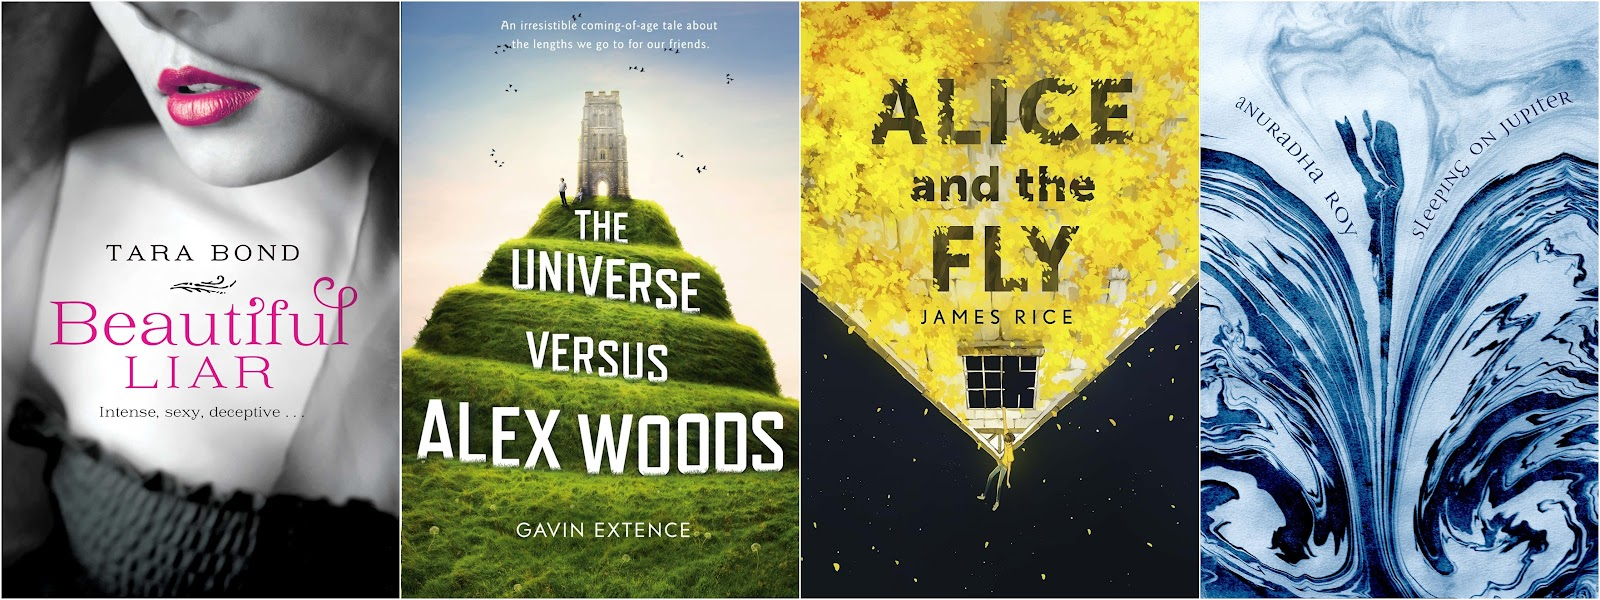 the daily struggles of alex in the universe versus alex woods a novel by gavin extence The debate around assisted suicide is eternally controversial but, when it comes to an argument for allowing sick people of mind the right to die, the universe versus alex woods trumps any dignitas spokesman  .